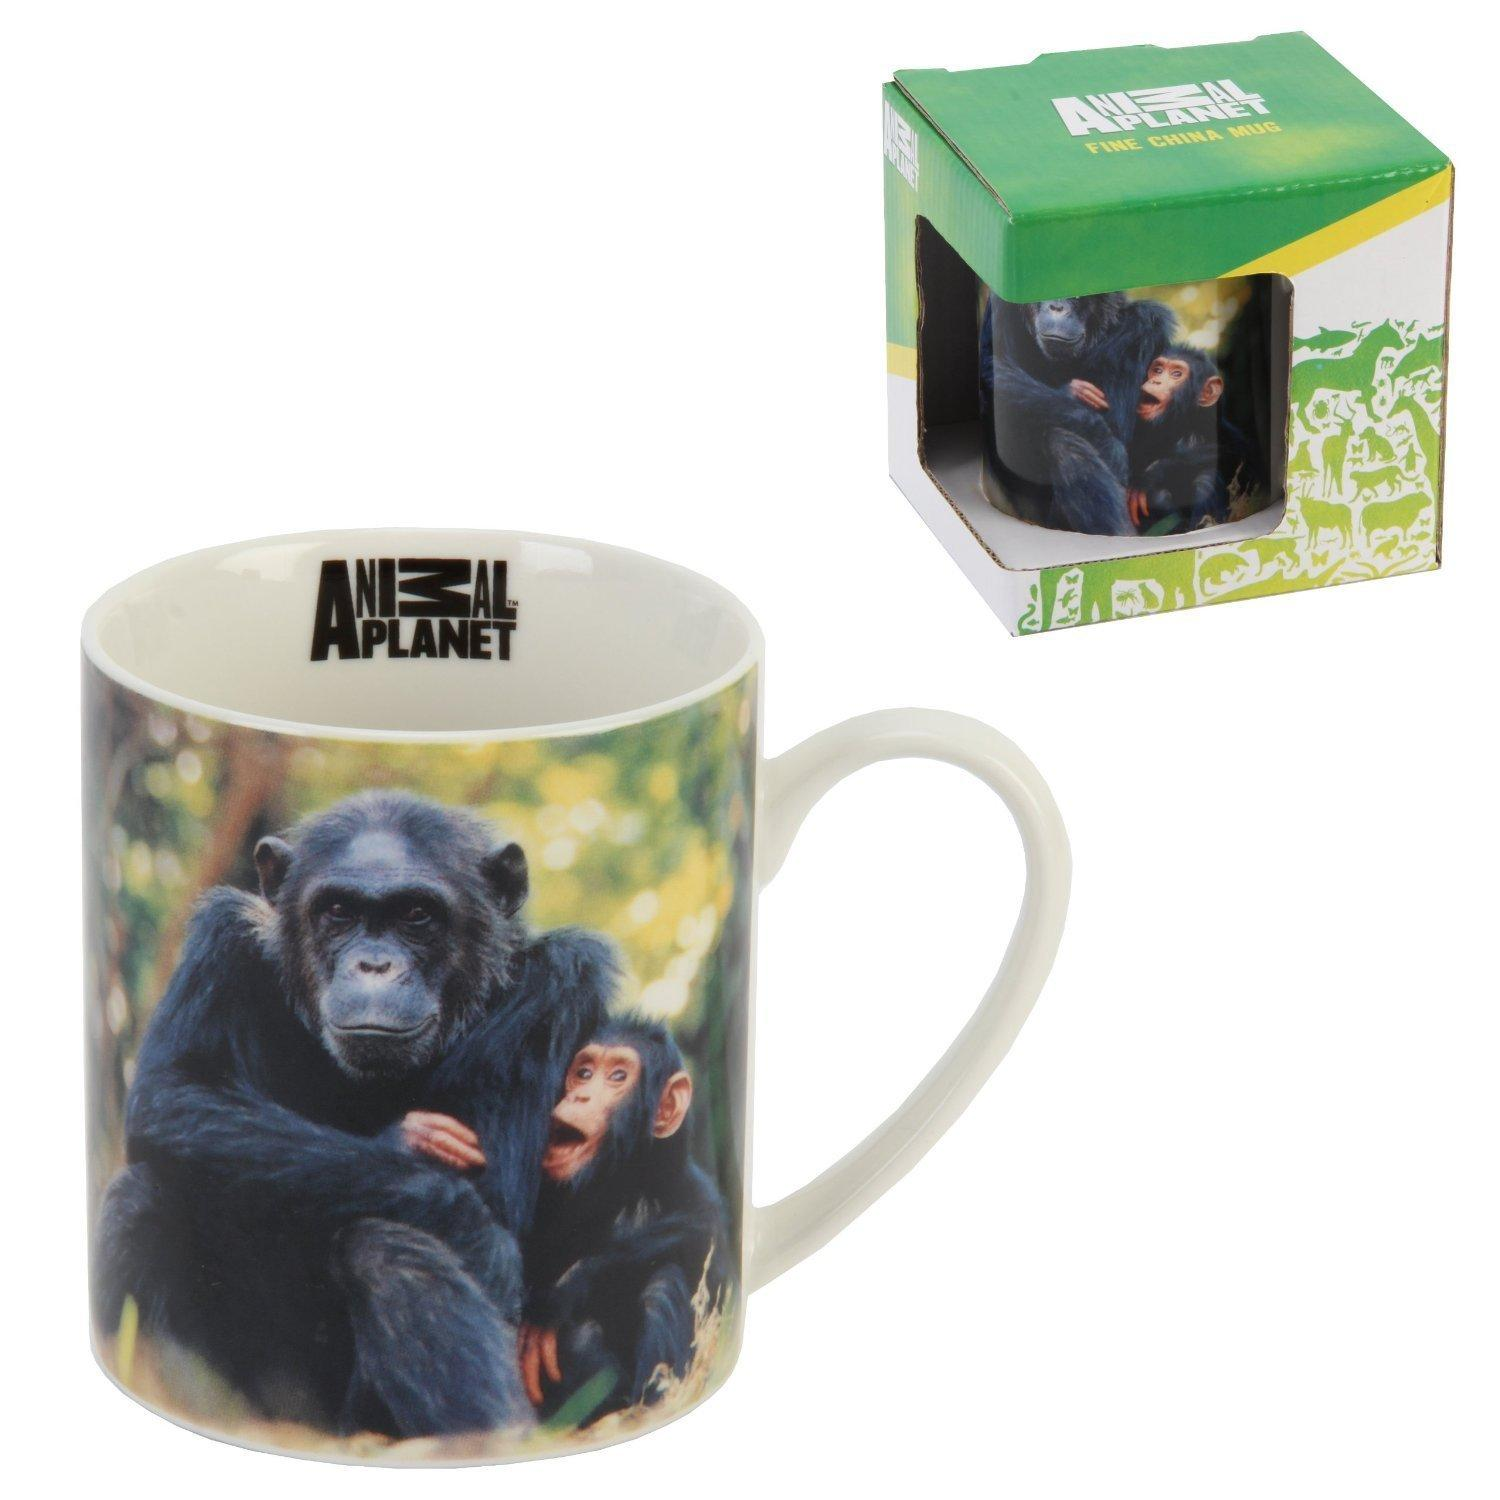 Animal Planet Chimpanzee Fine China Mug